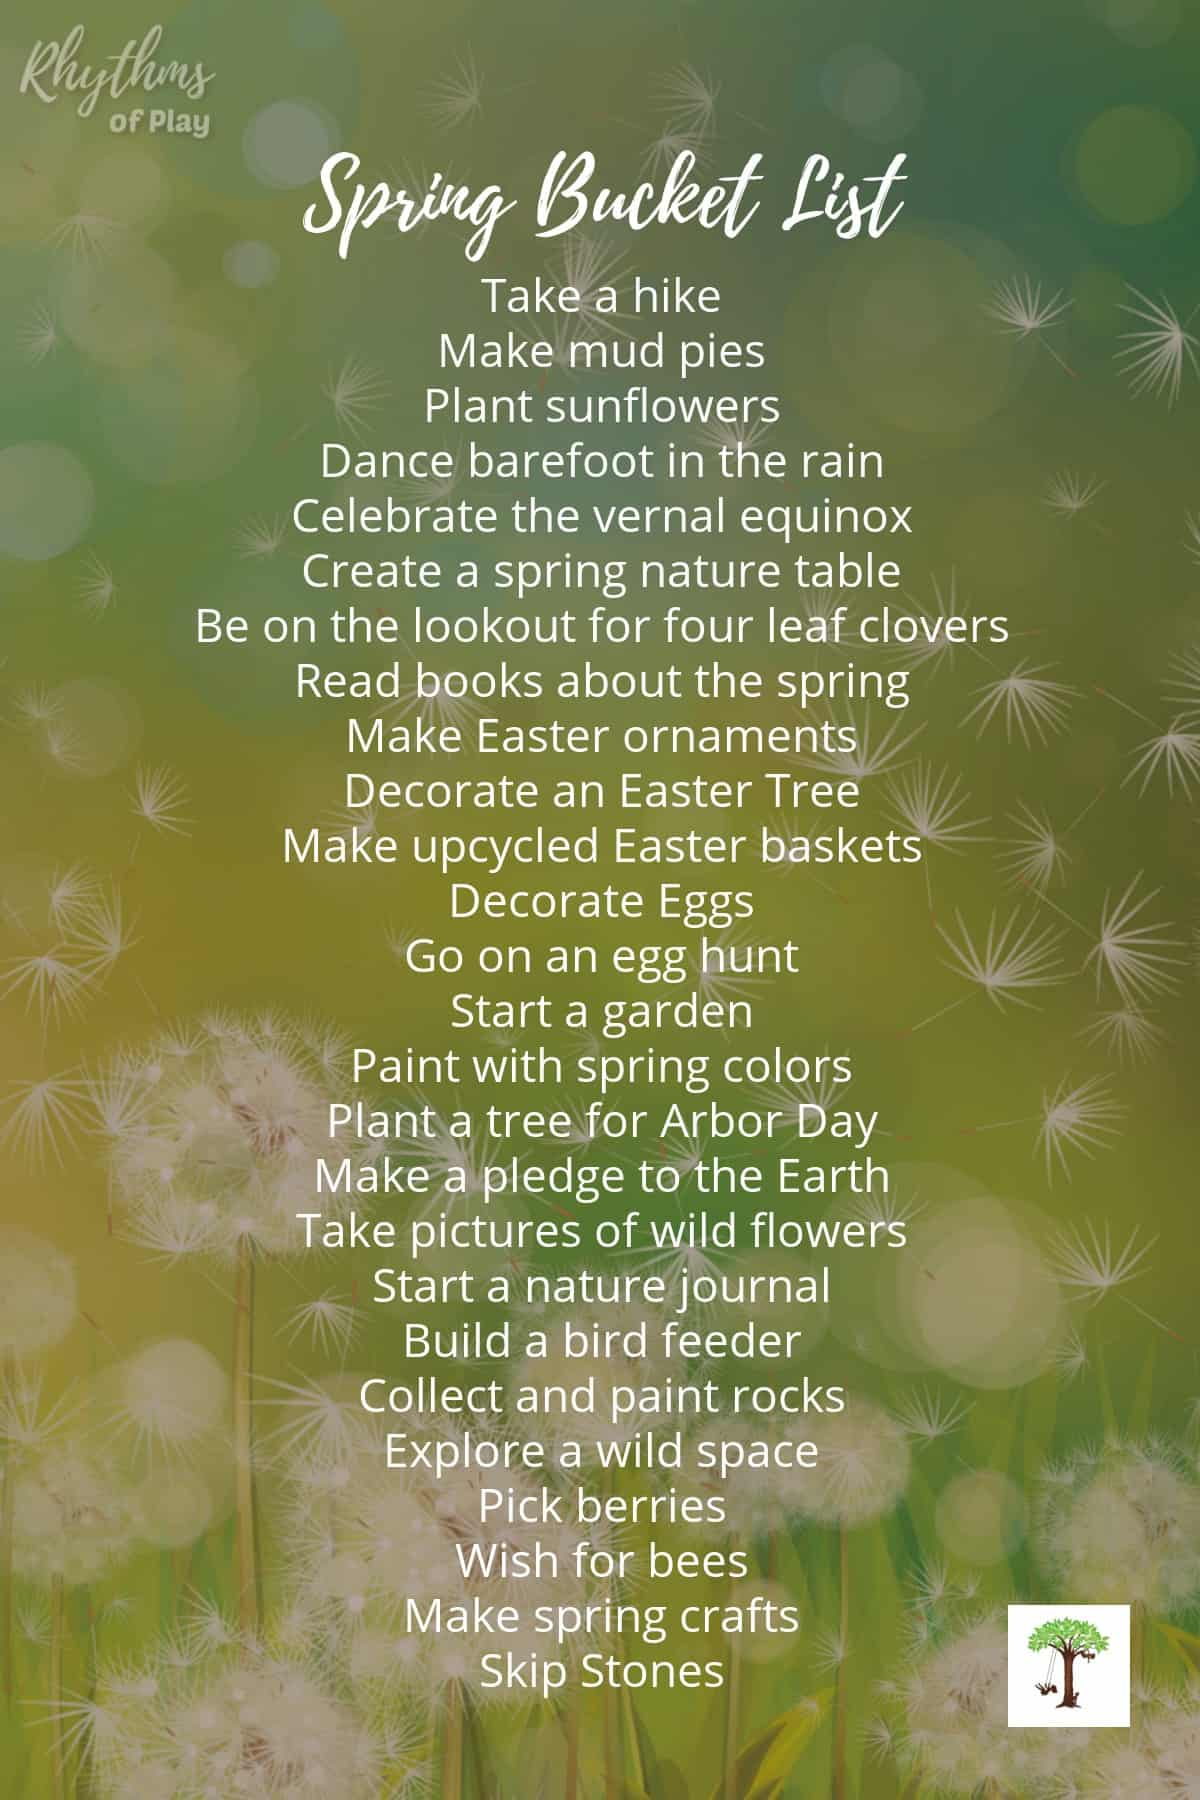 Spring bucket list of fun spring activities for kids with how-to's